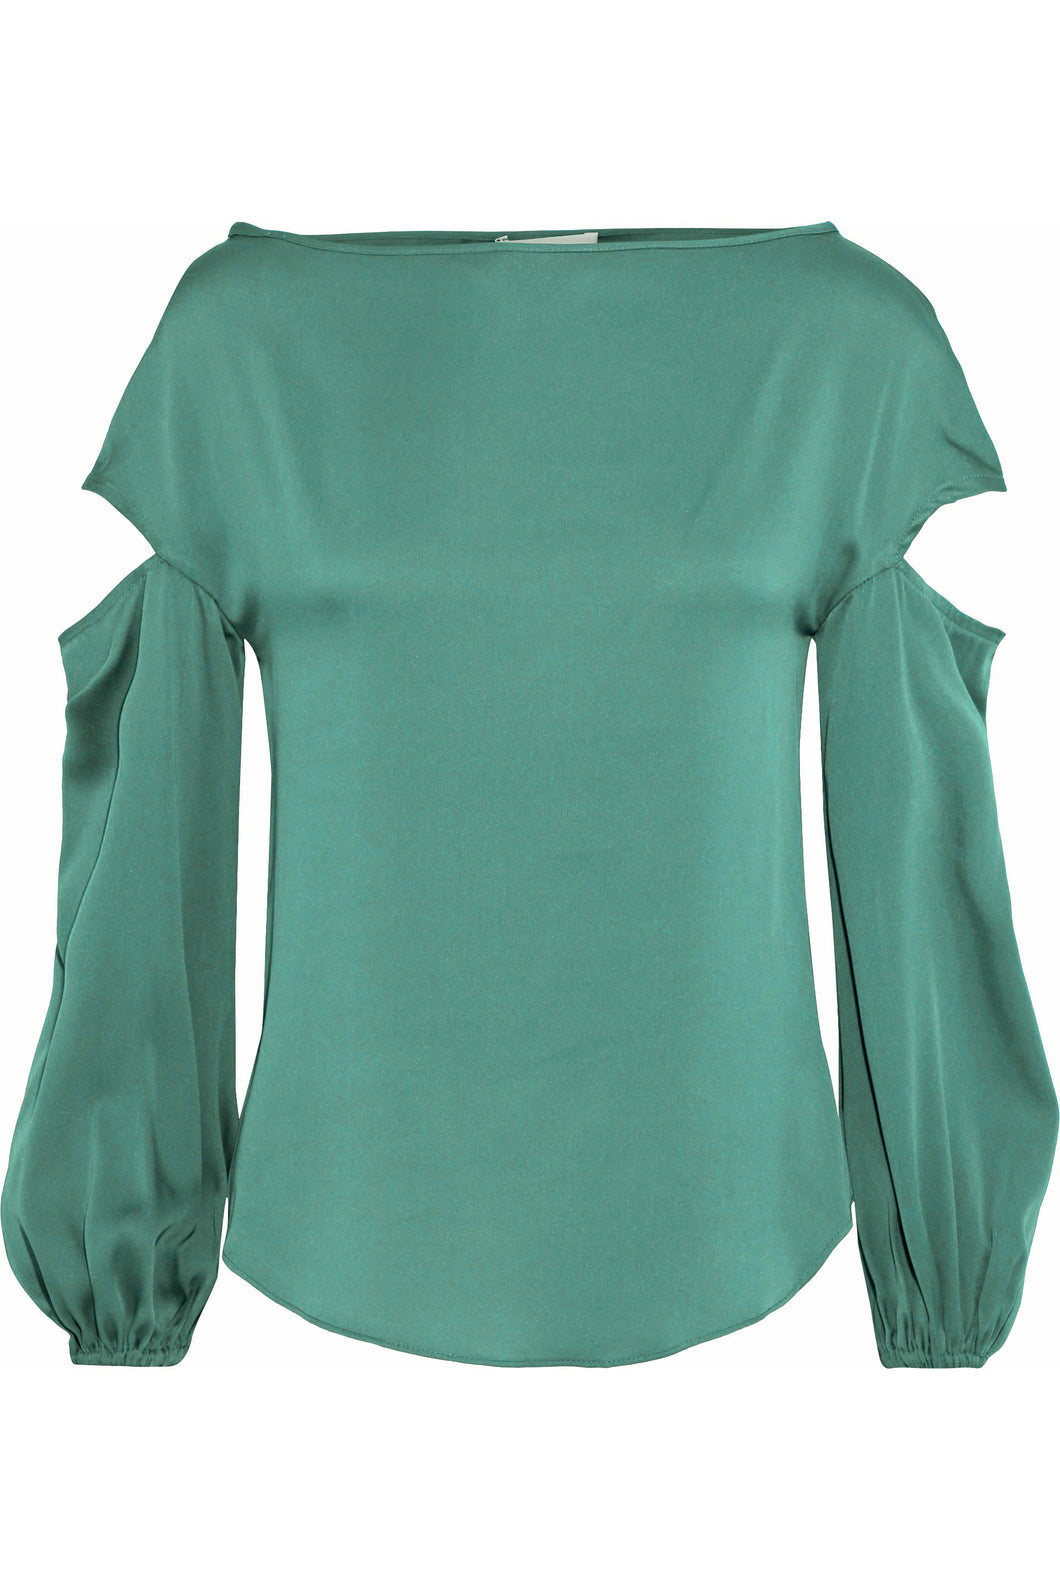 Milly Dahlia Top in Ice